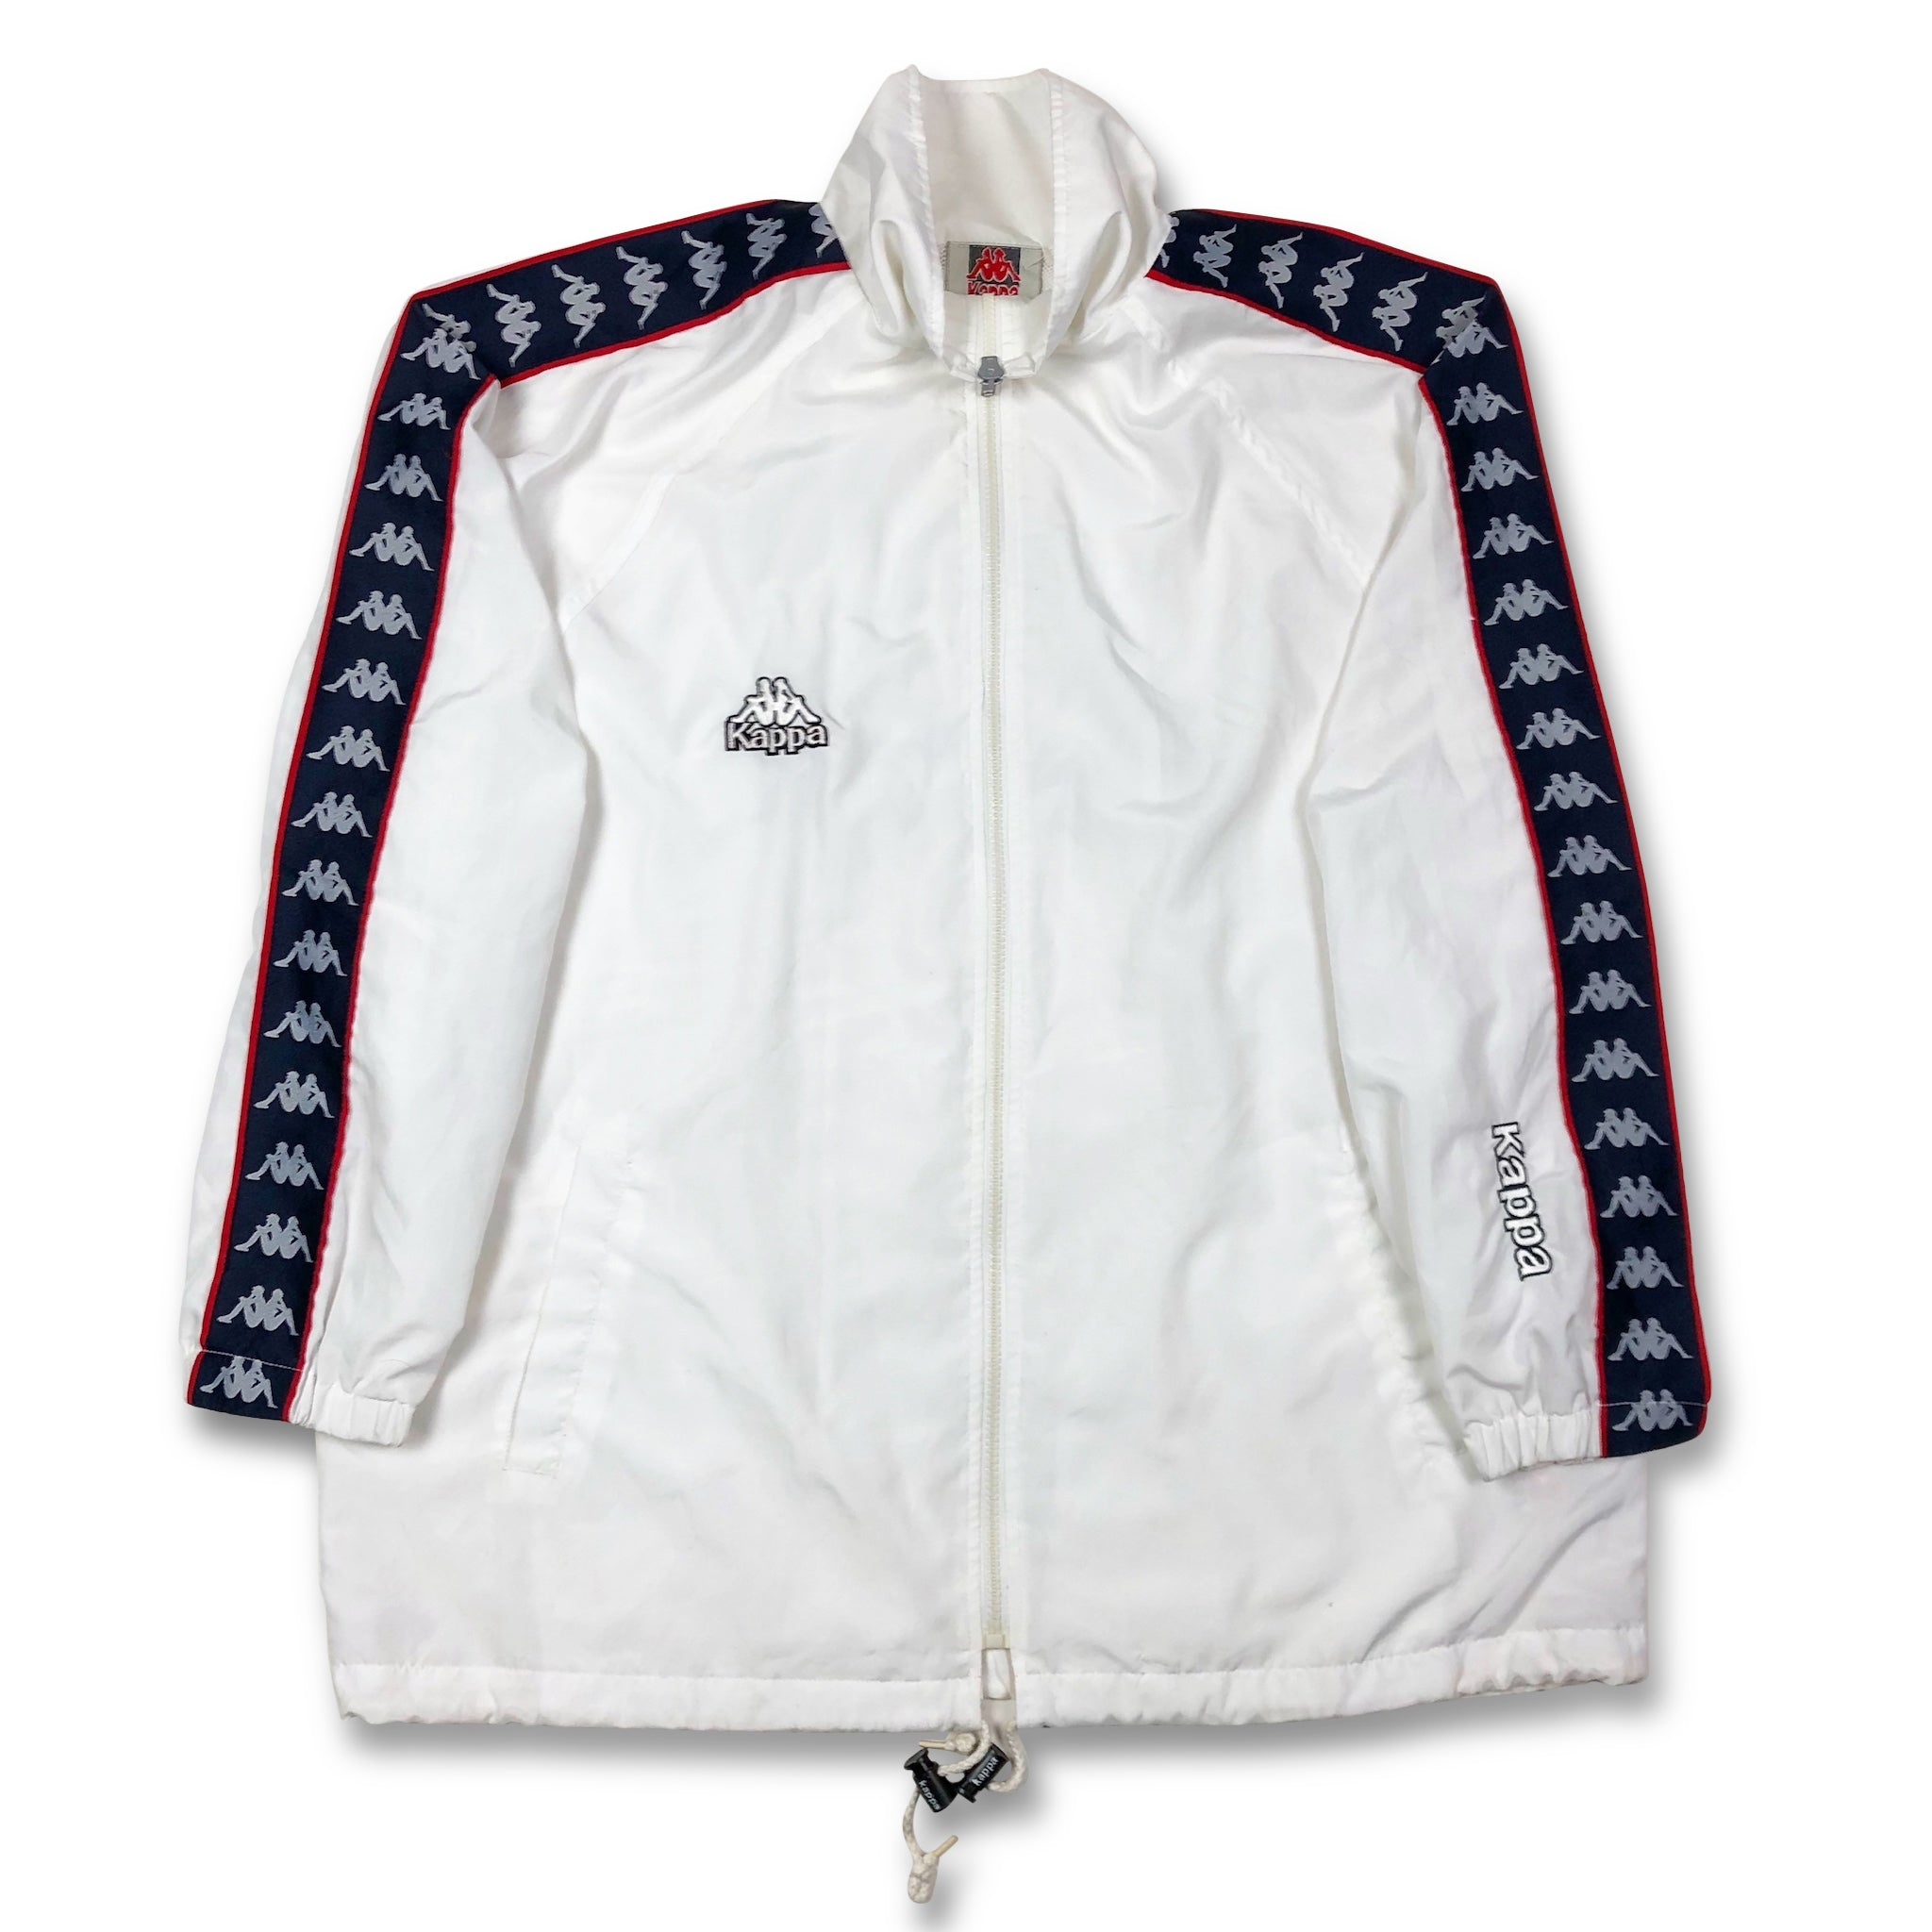 Vintage Kappa Big Logo Zip Up Jacket